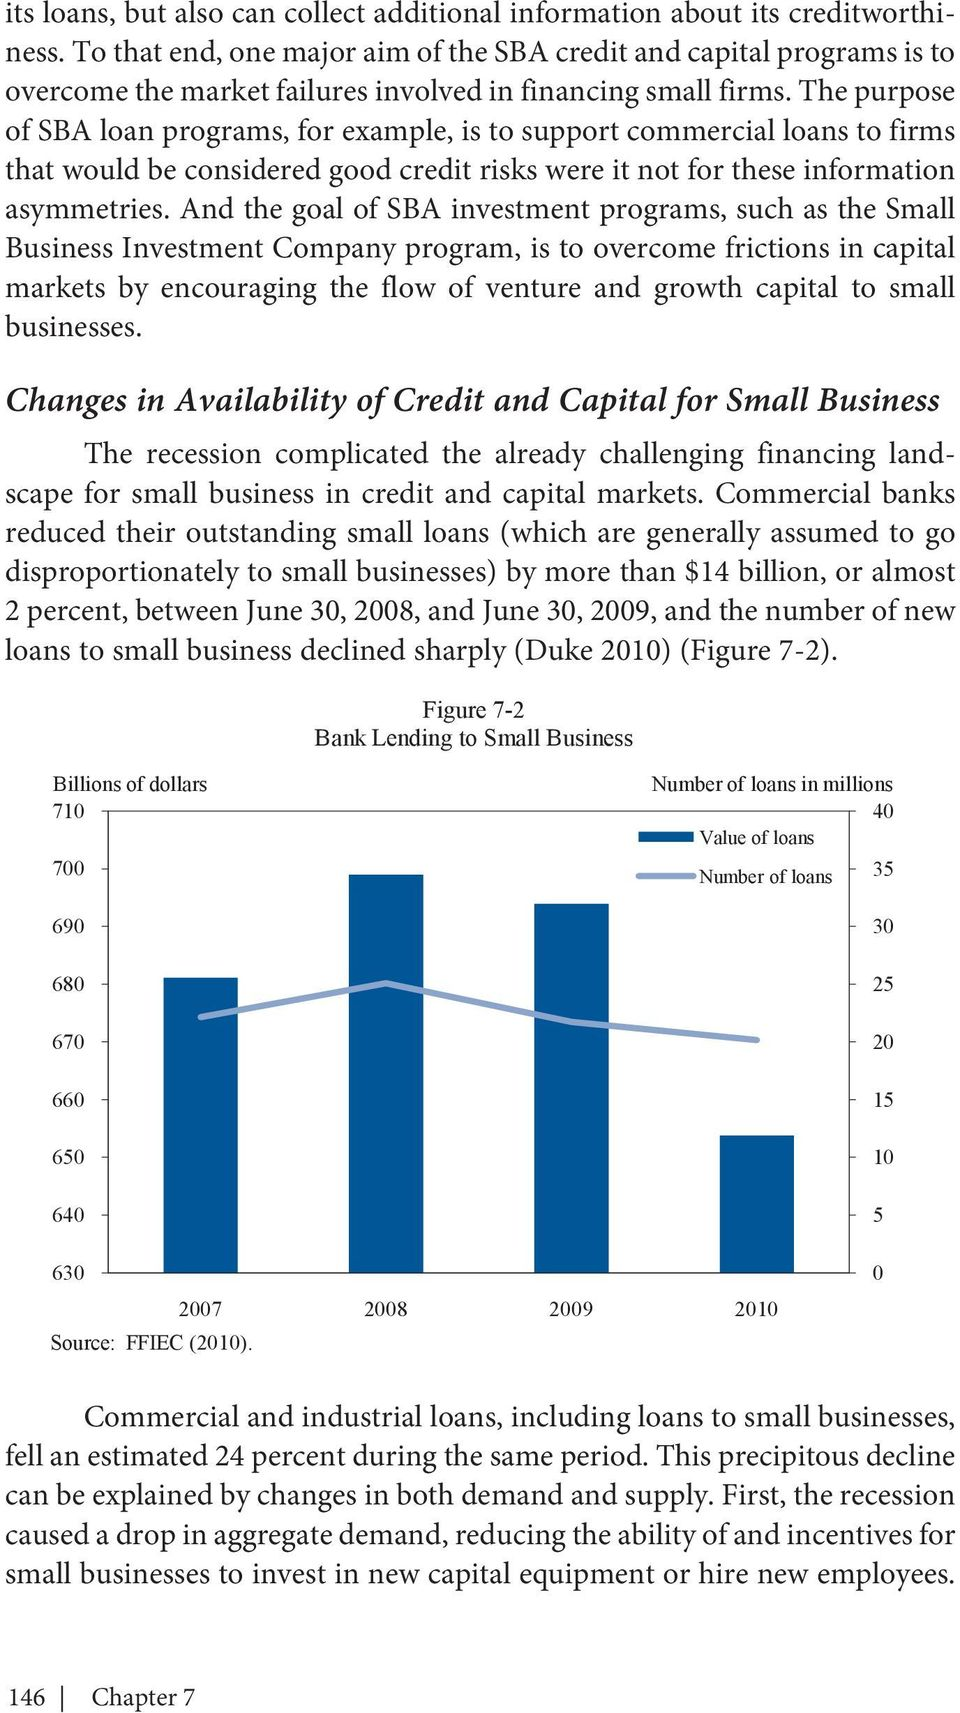 The purpose of SBA loan programs, for example, is to support commercial loans to firms that would be considered good credit risks were it not for these information asymmetries.